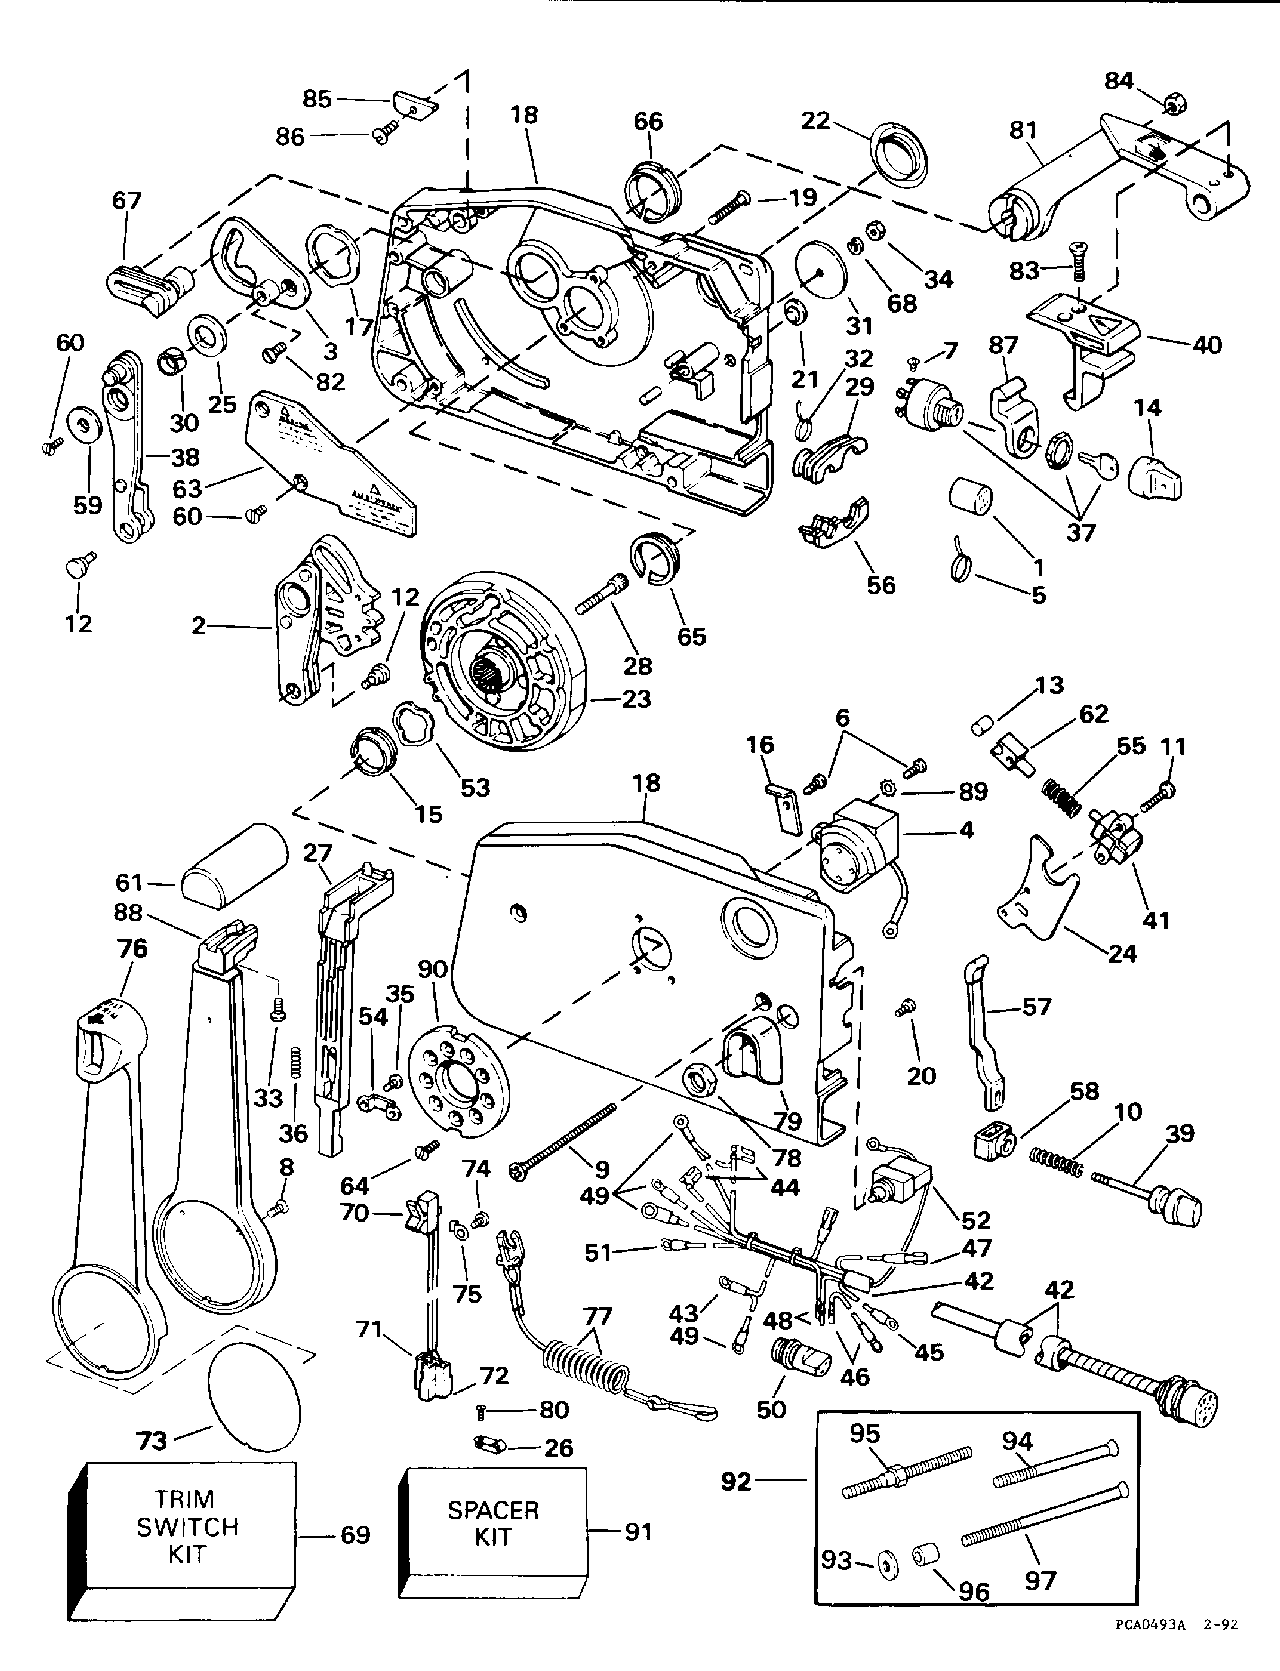 Mercury A15 Side Mount Control Box Wiring Diagram